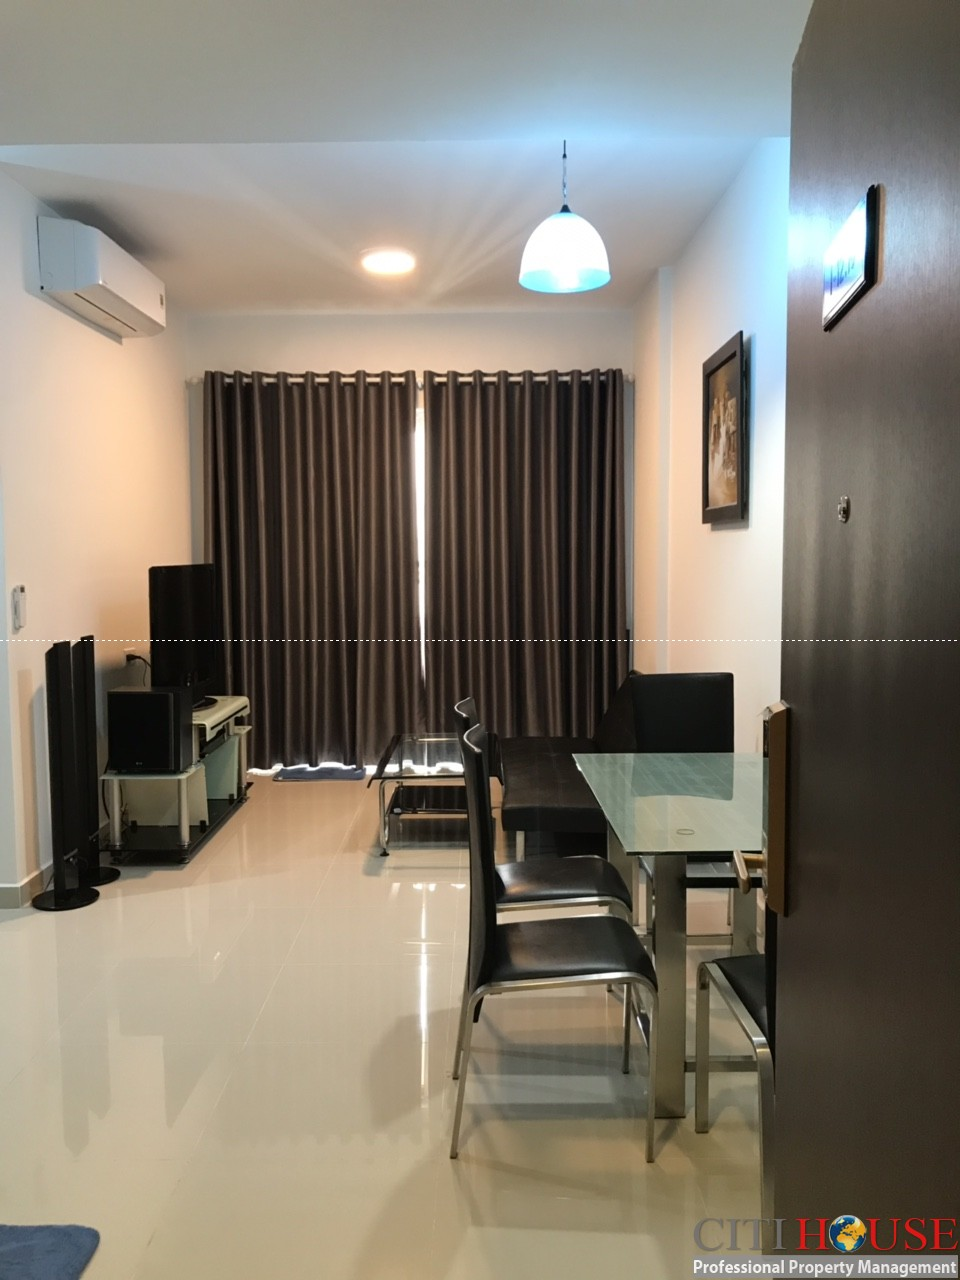 Sunrise Riverside apartment for rent with view of the river and park